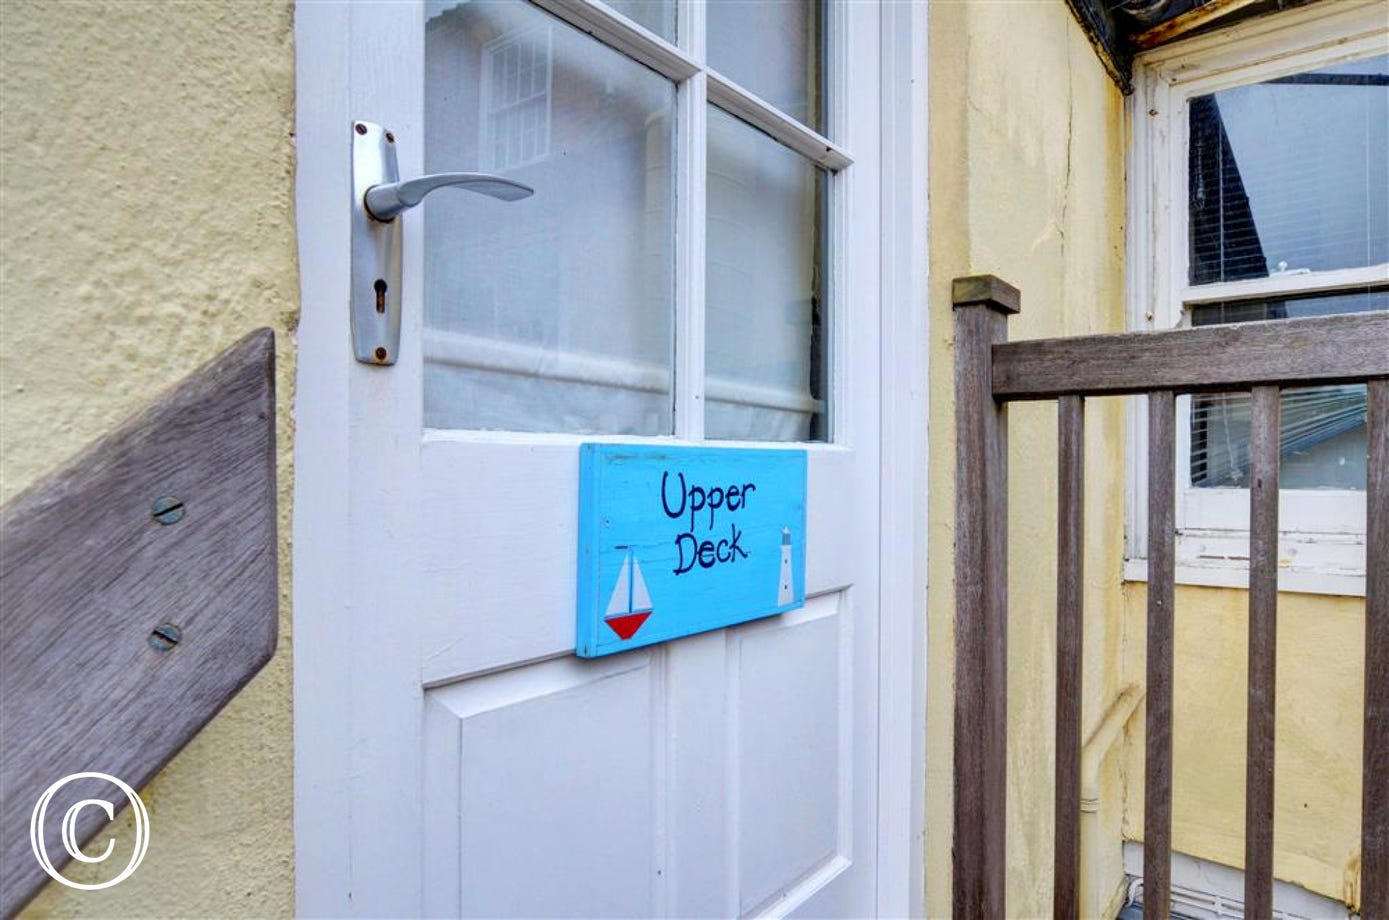 The Upper Deck is a rustic apartment for 4 with mod cons in the heart of Southwold.